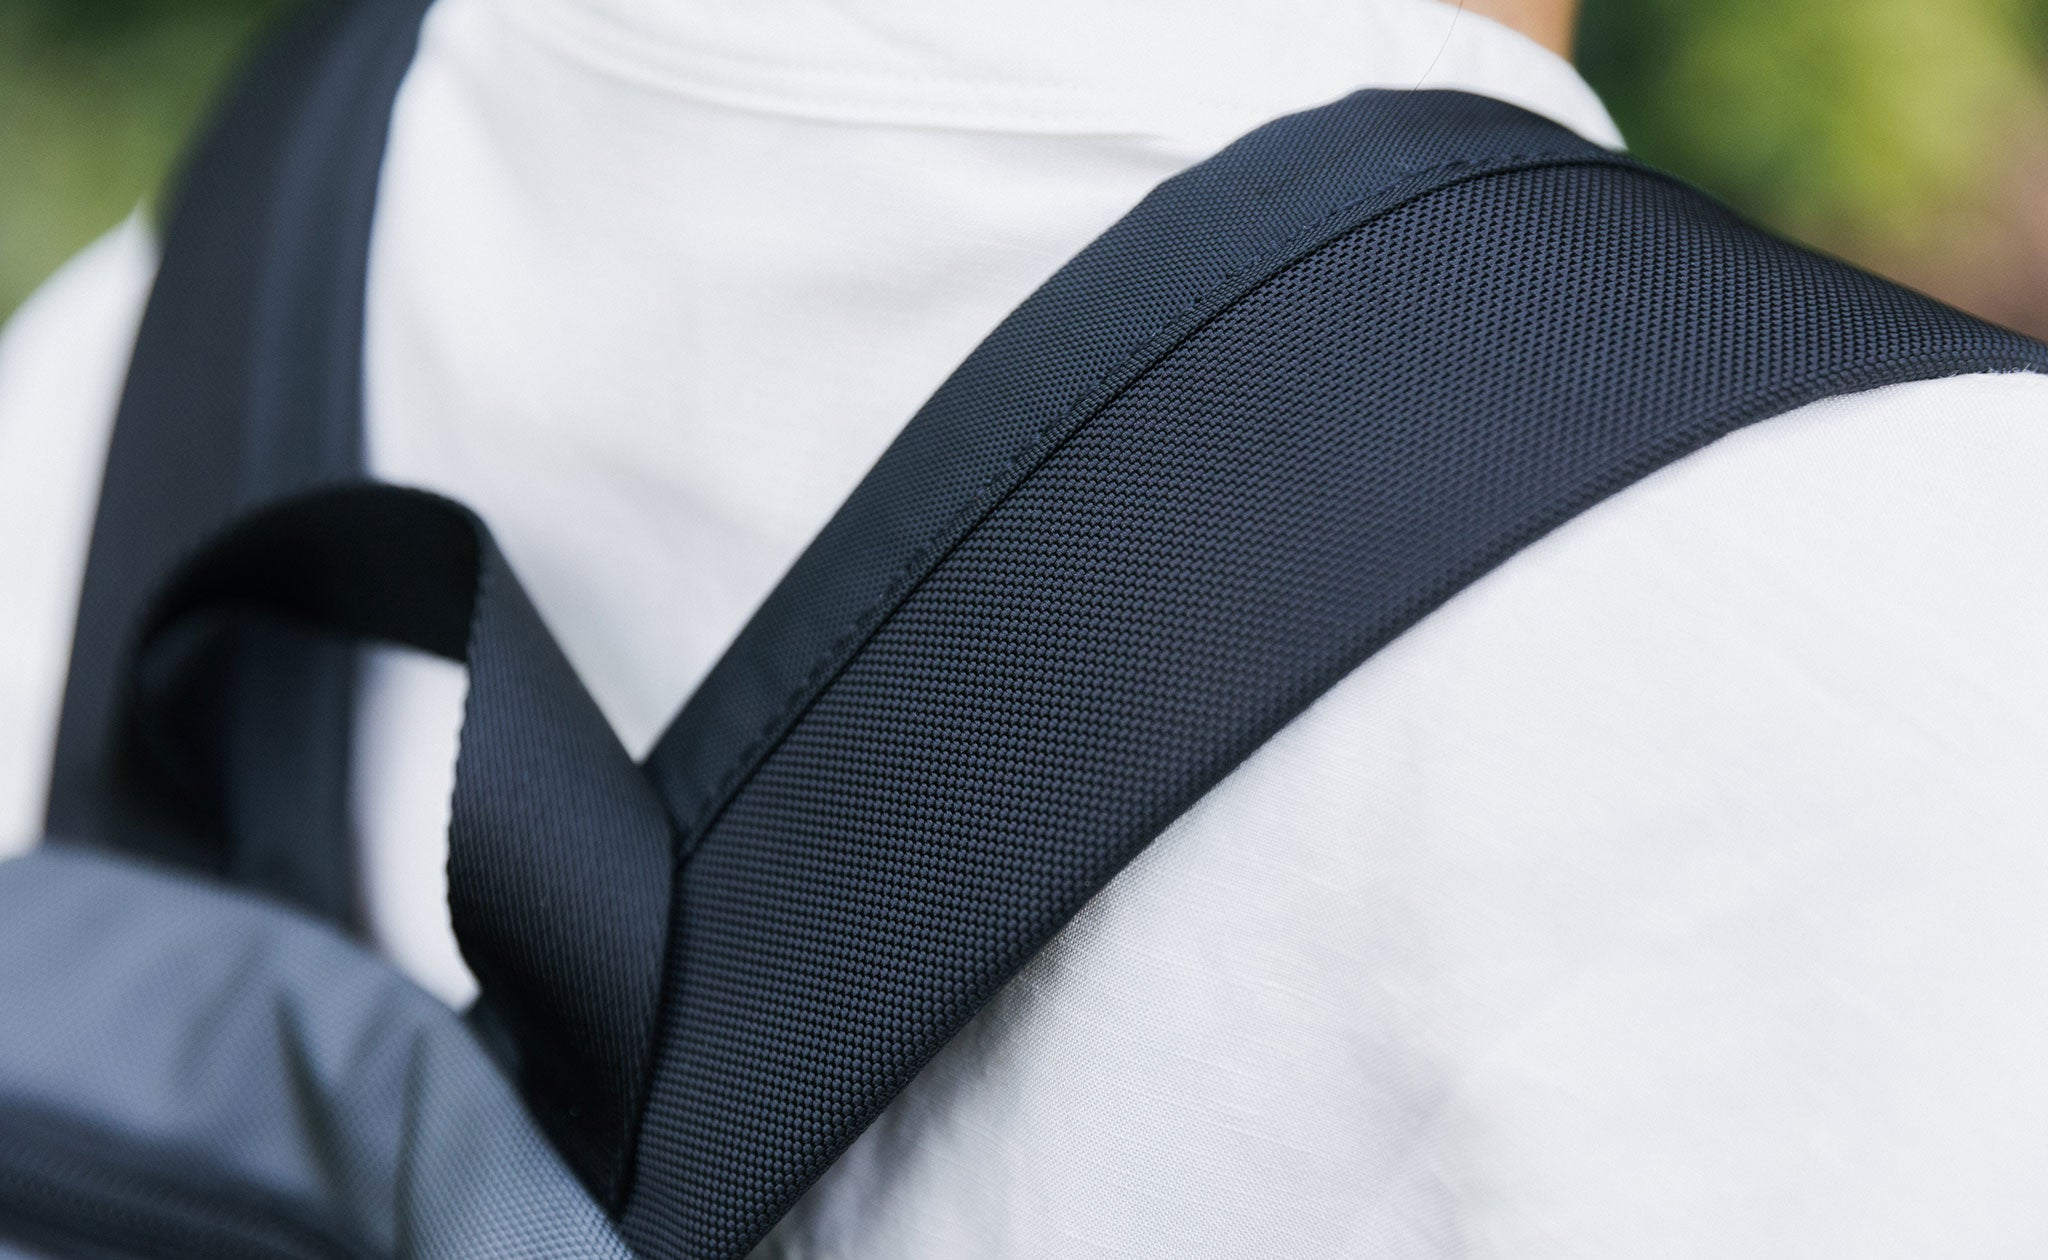 The Contour Backpack Straps of the Paradigm on a person's shoulders